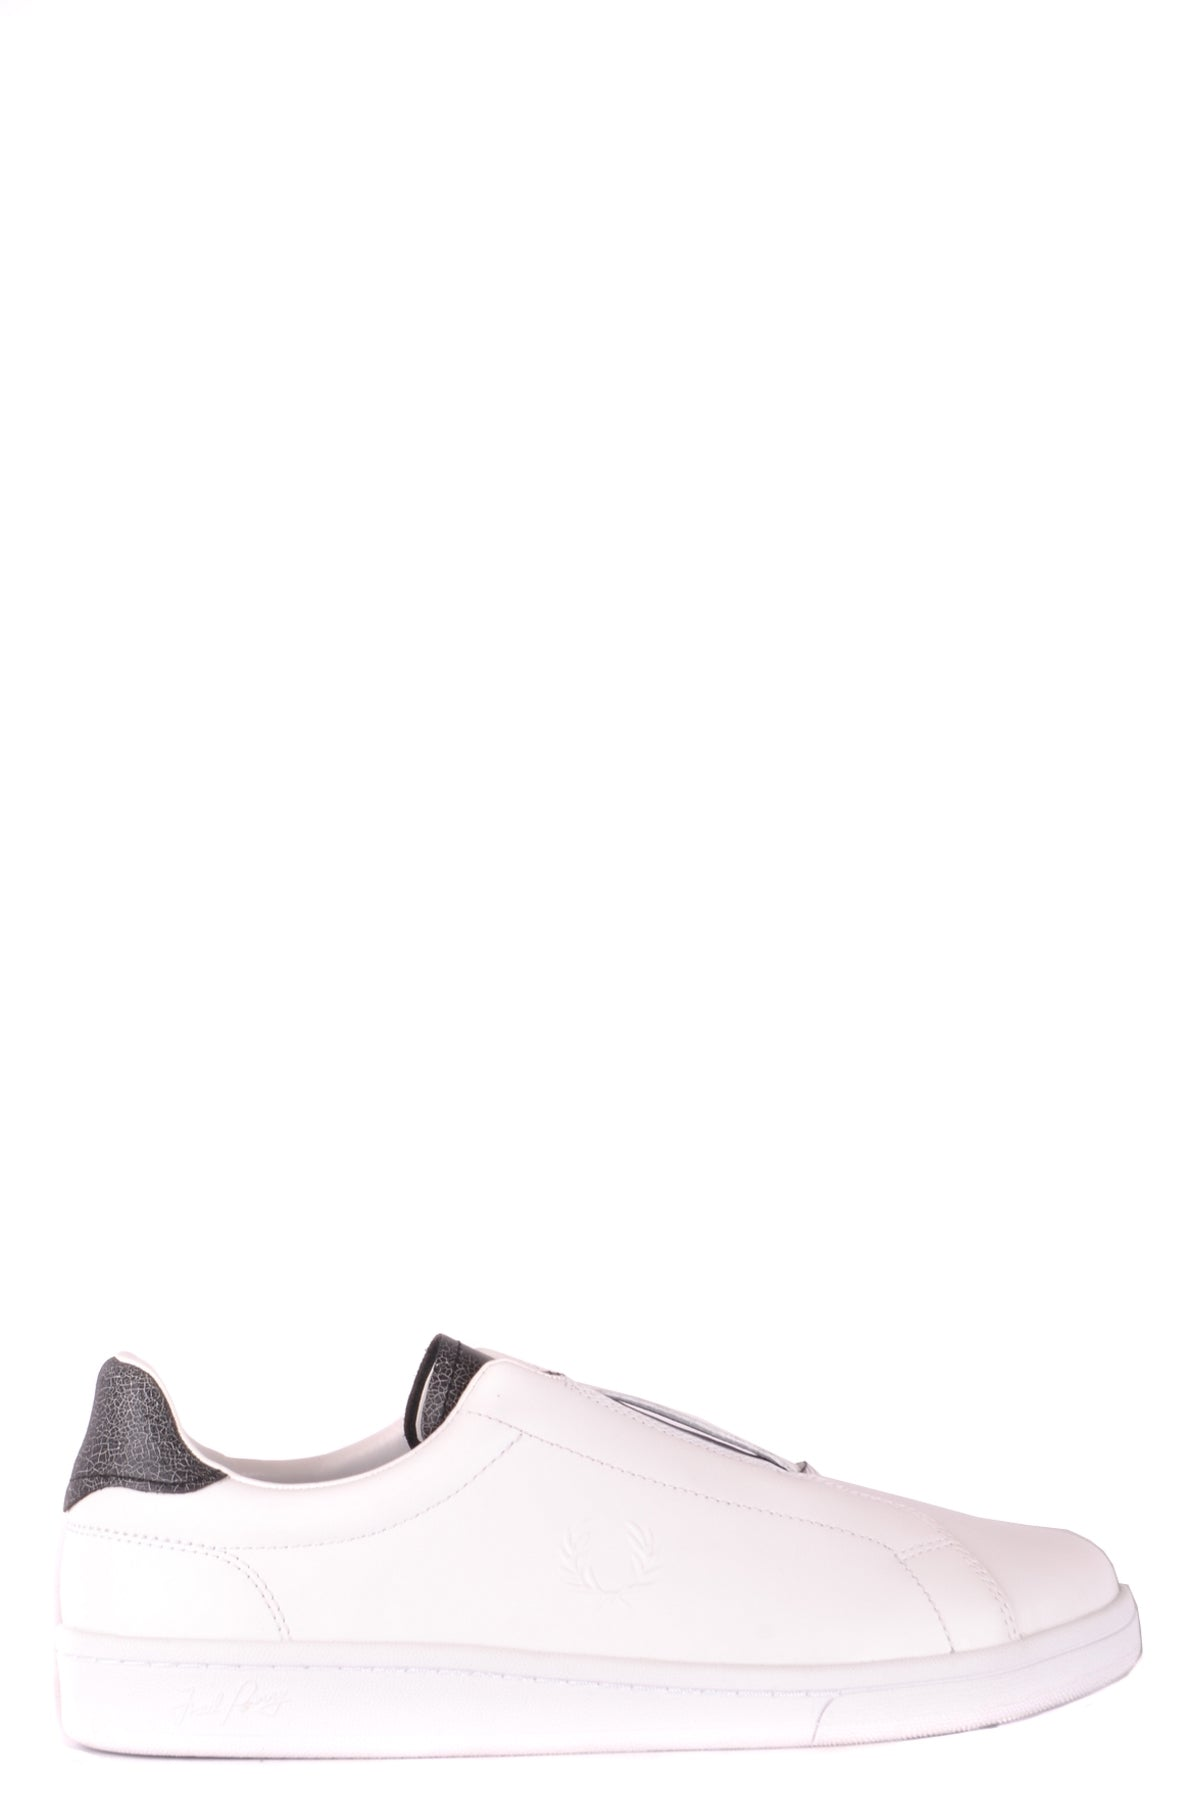 Shoes Fred Perry-Sneakers - Shoes-7-Product Details Type Of Accessory: ShoesTerms: New With LabelYear: 2018Main Color: WhiteGender: ManMade In: VietnamManufacturer Part Number: B721Size: UkSeason: Spring / SummerComposition: Leather 100%-Keyomi-Sook